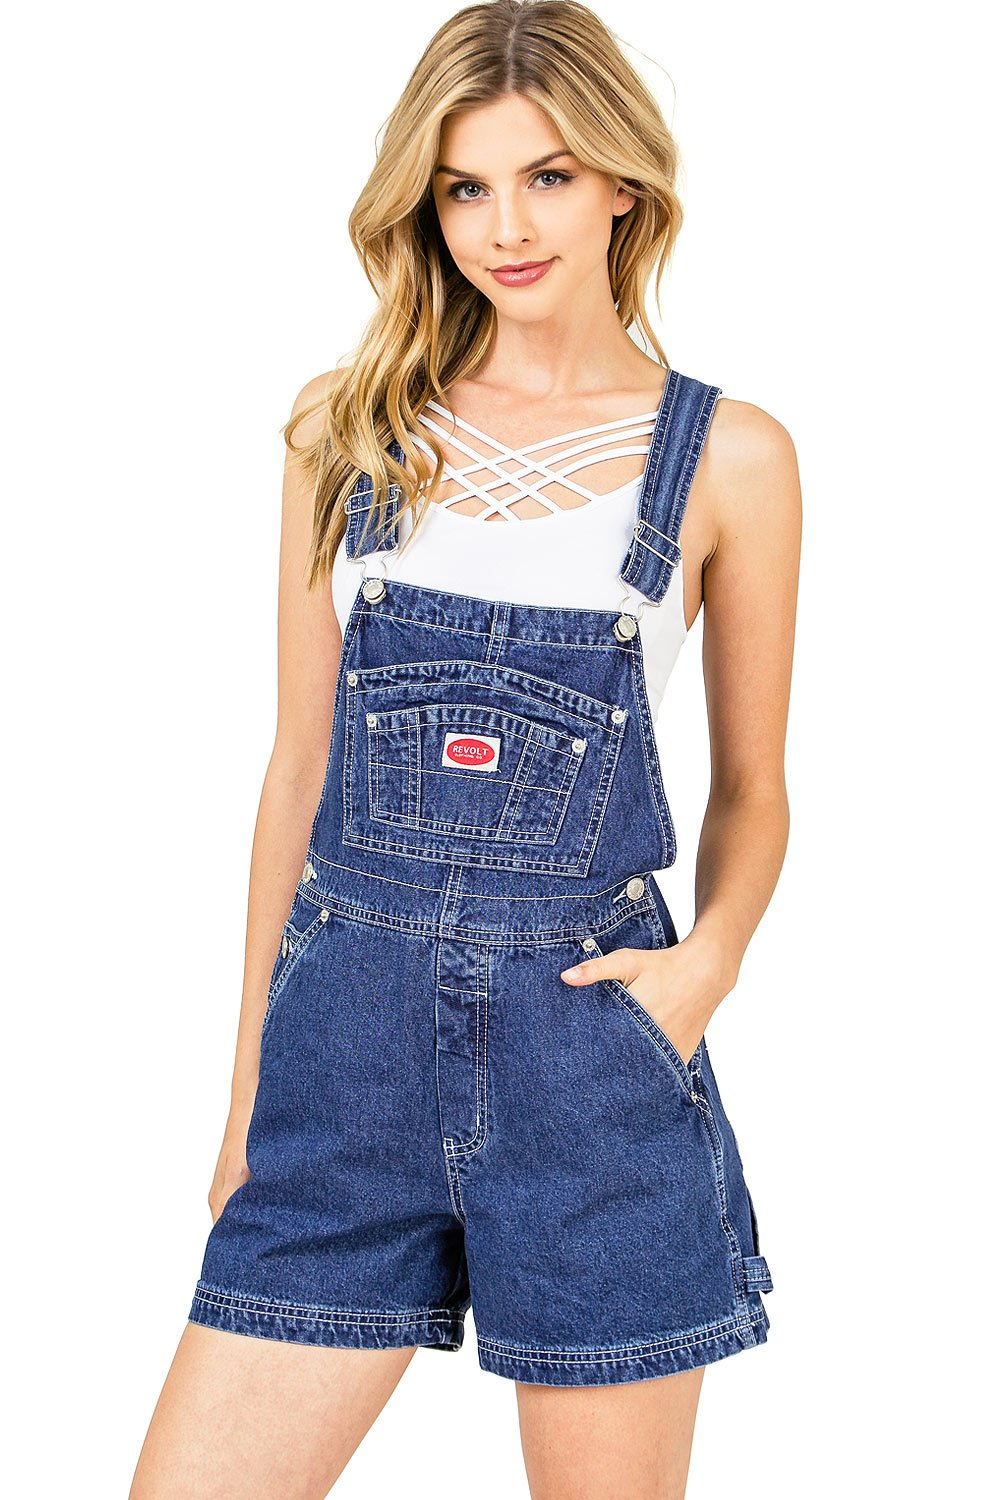 Revolt Women's Juniors Classic Denim Short Overalls (S, Medium Denim)